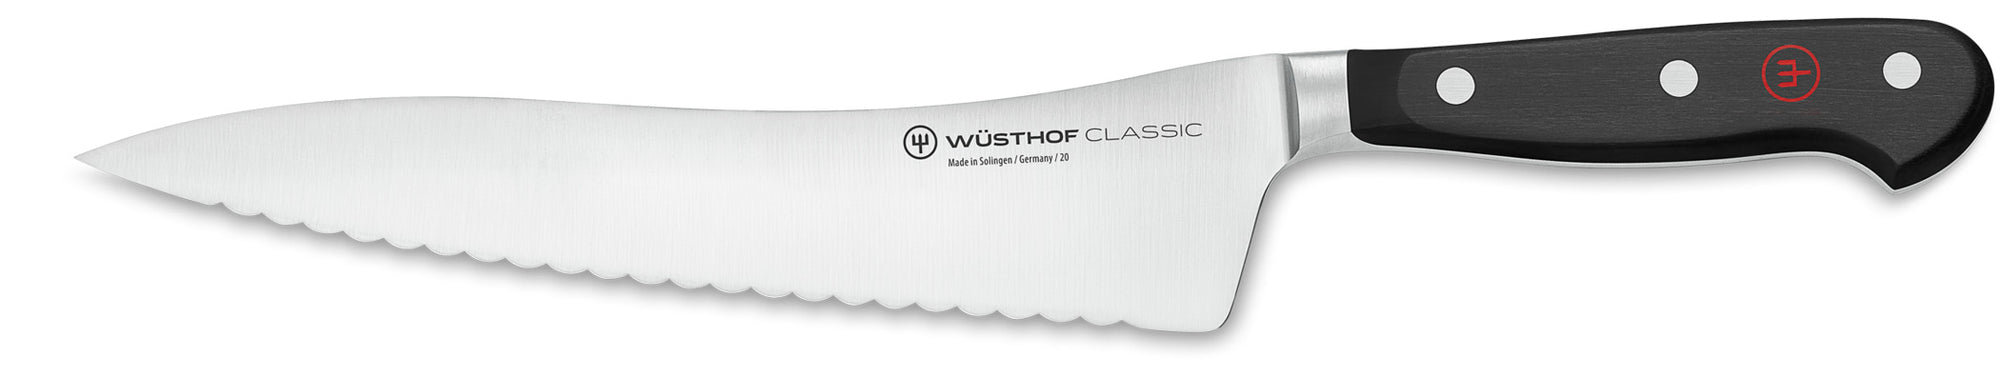 Wusthof Canada Offset Serrated Bread Knife 4128